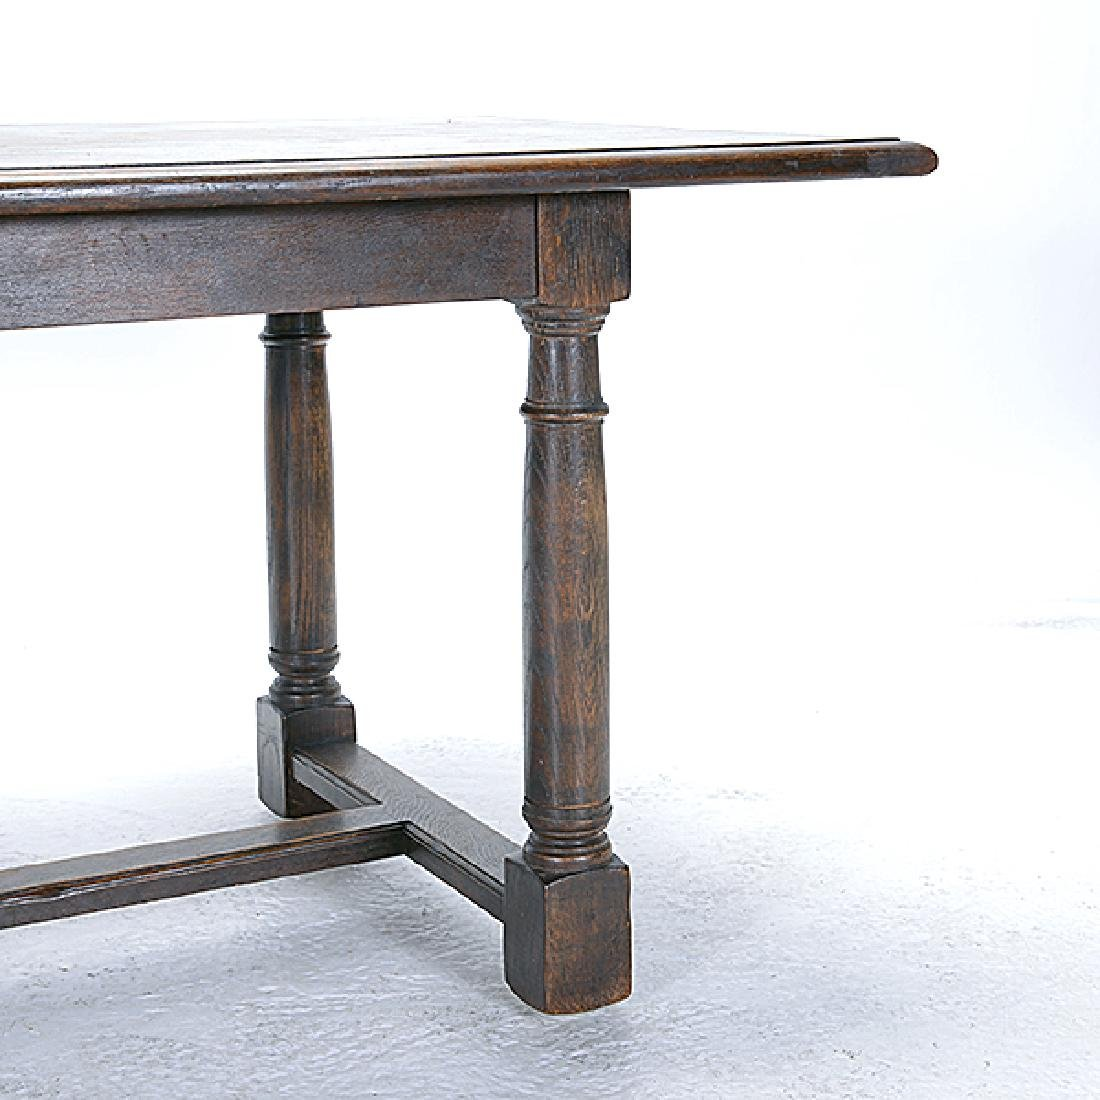 Italian Renaissance Revival Oak Trestle Table with - 3